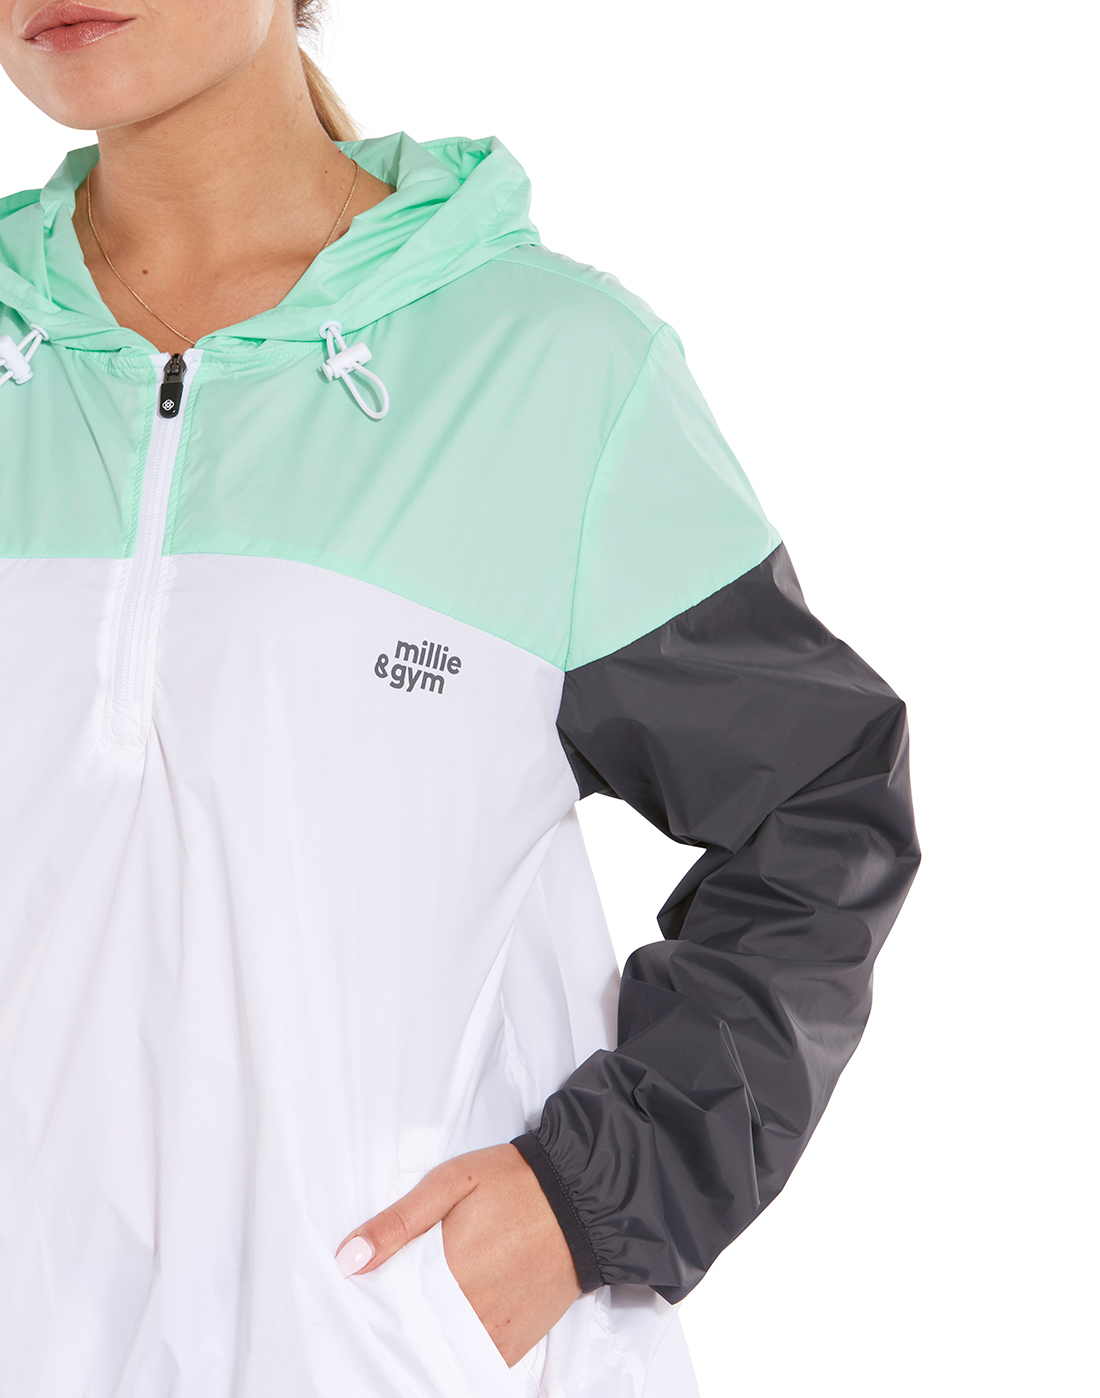 3a785ea8c White & Mint Green Millie & Gym Jacket | Life Style Sports